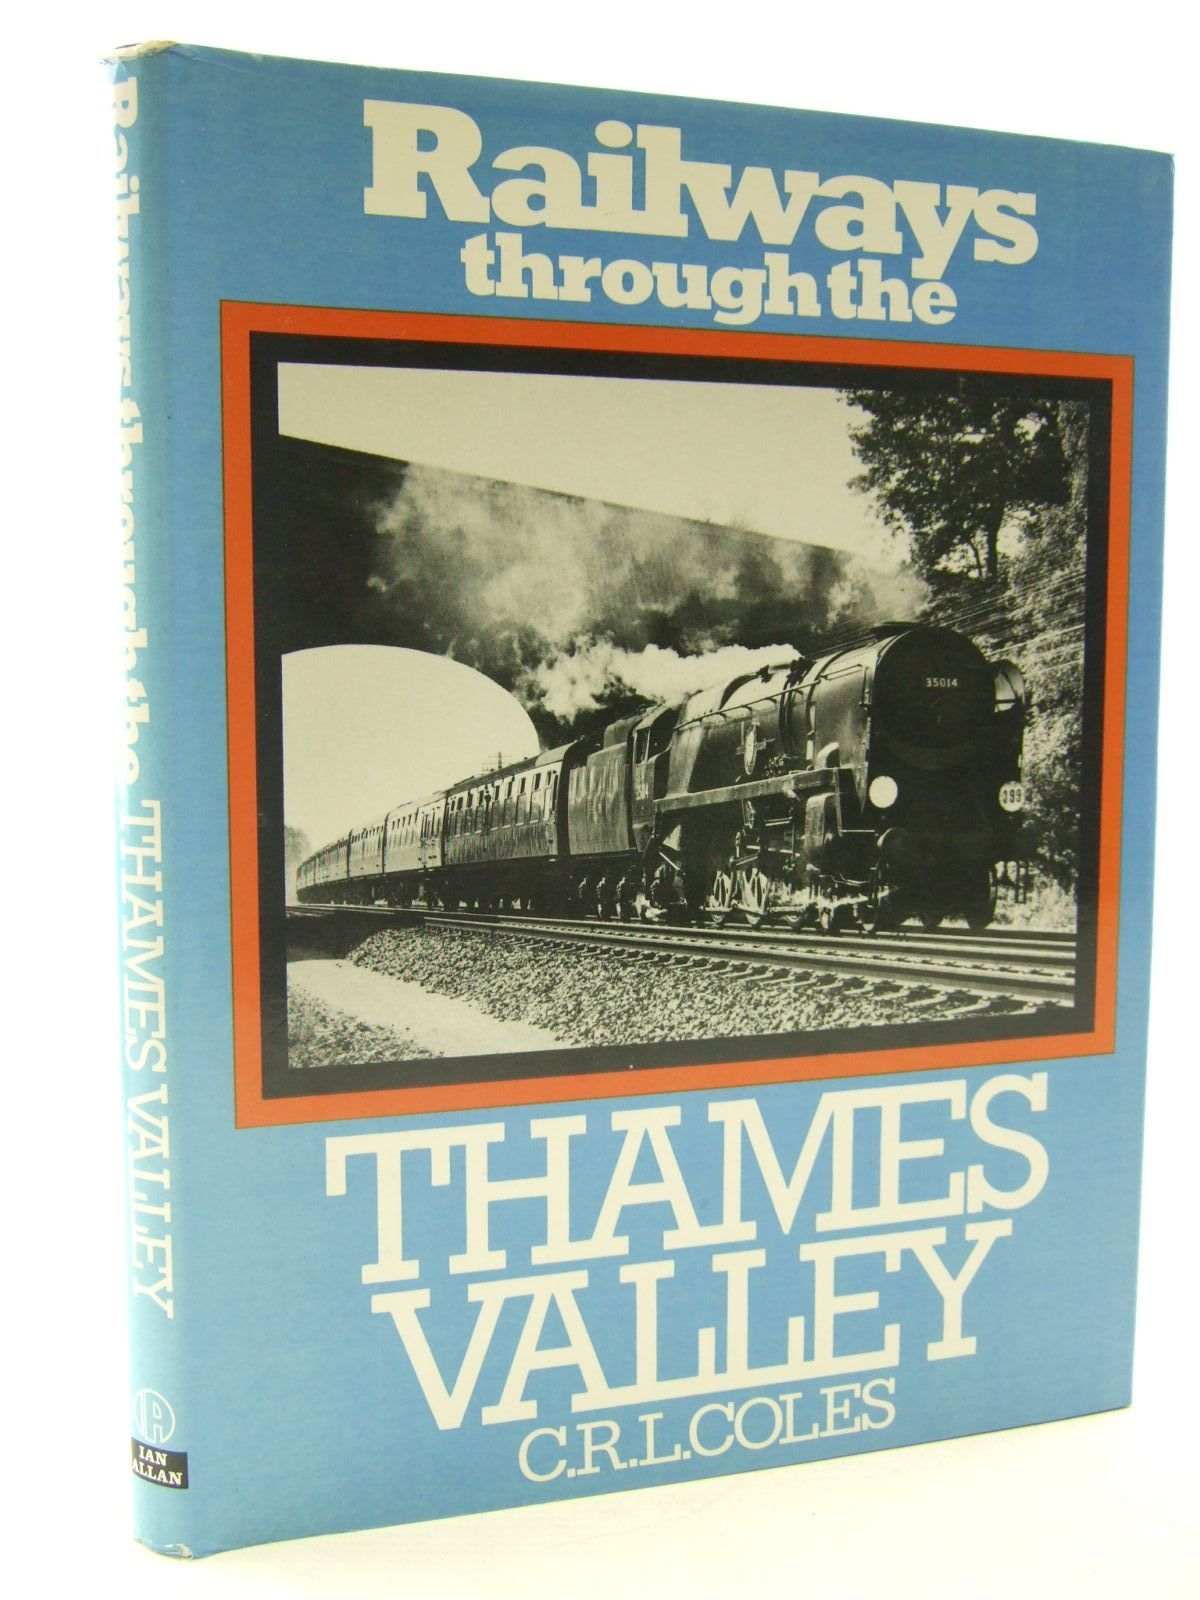 Photo of RAILWAYS THROUGH THE THAMES VALLEY written by Coles, C.R.L. published by Ian Allan Ltd. (STOCK CODE: 1706616)  for sale by Stella & Rose's Books